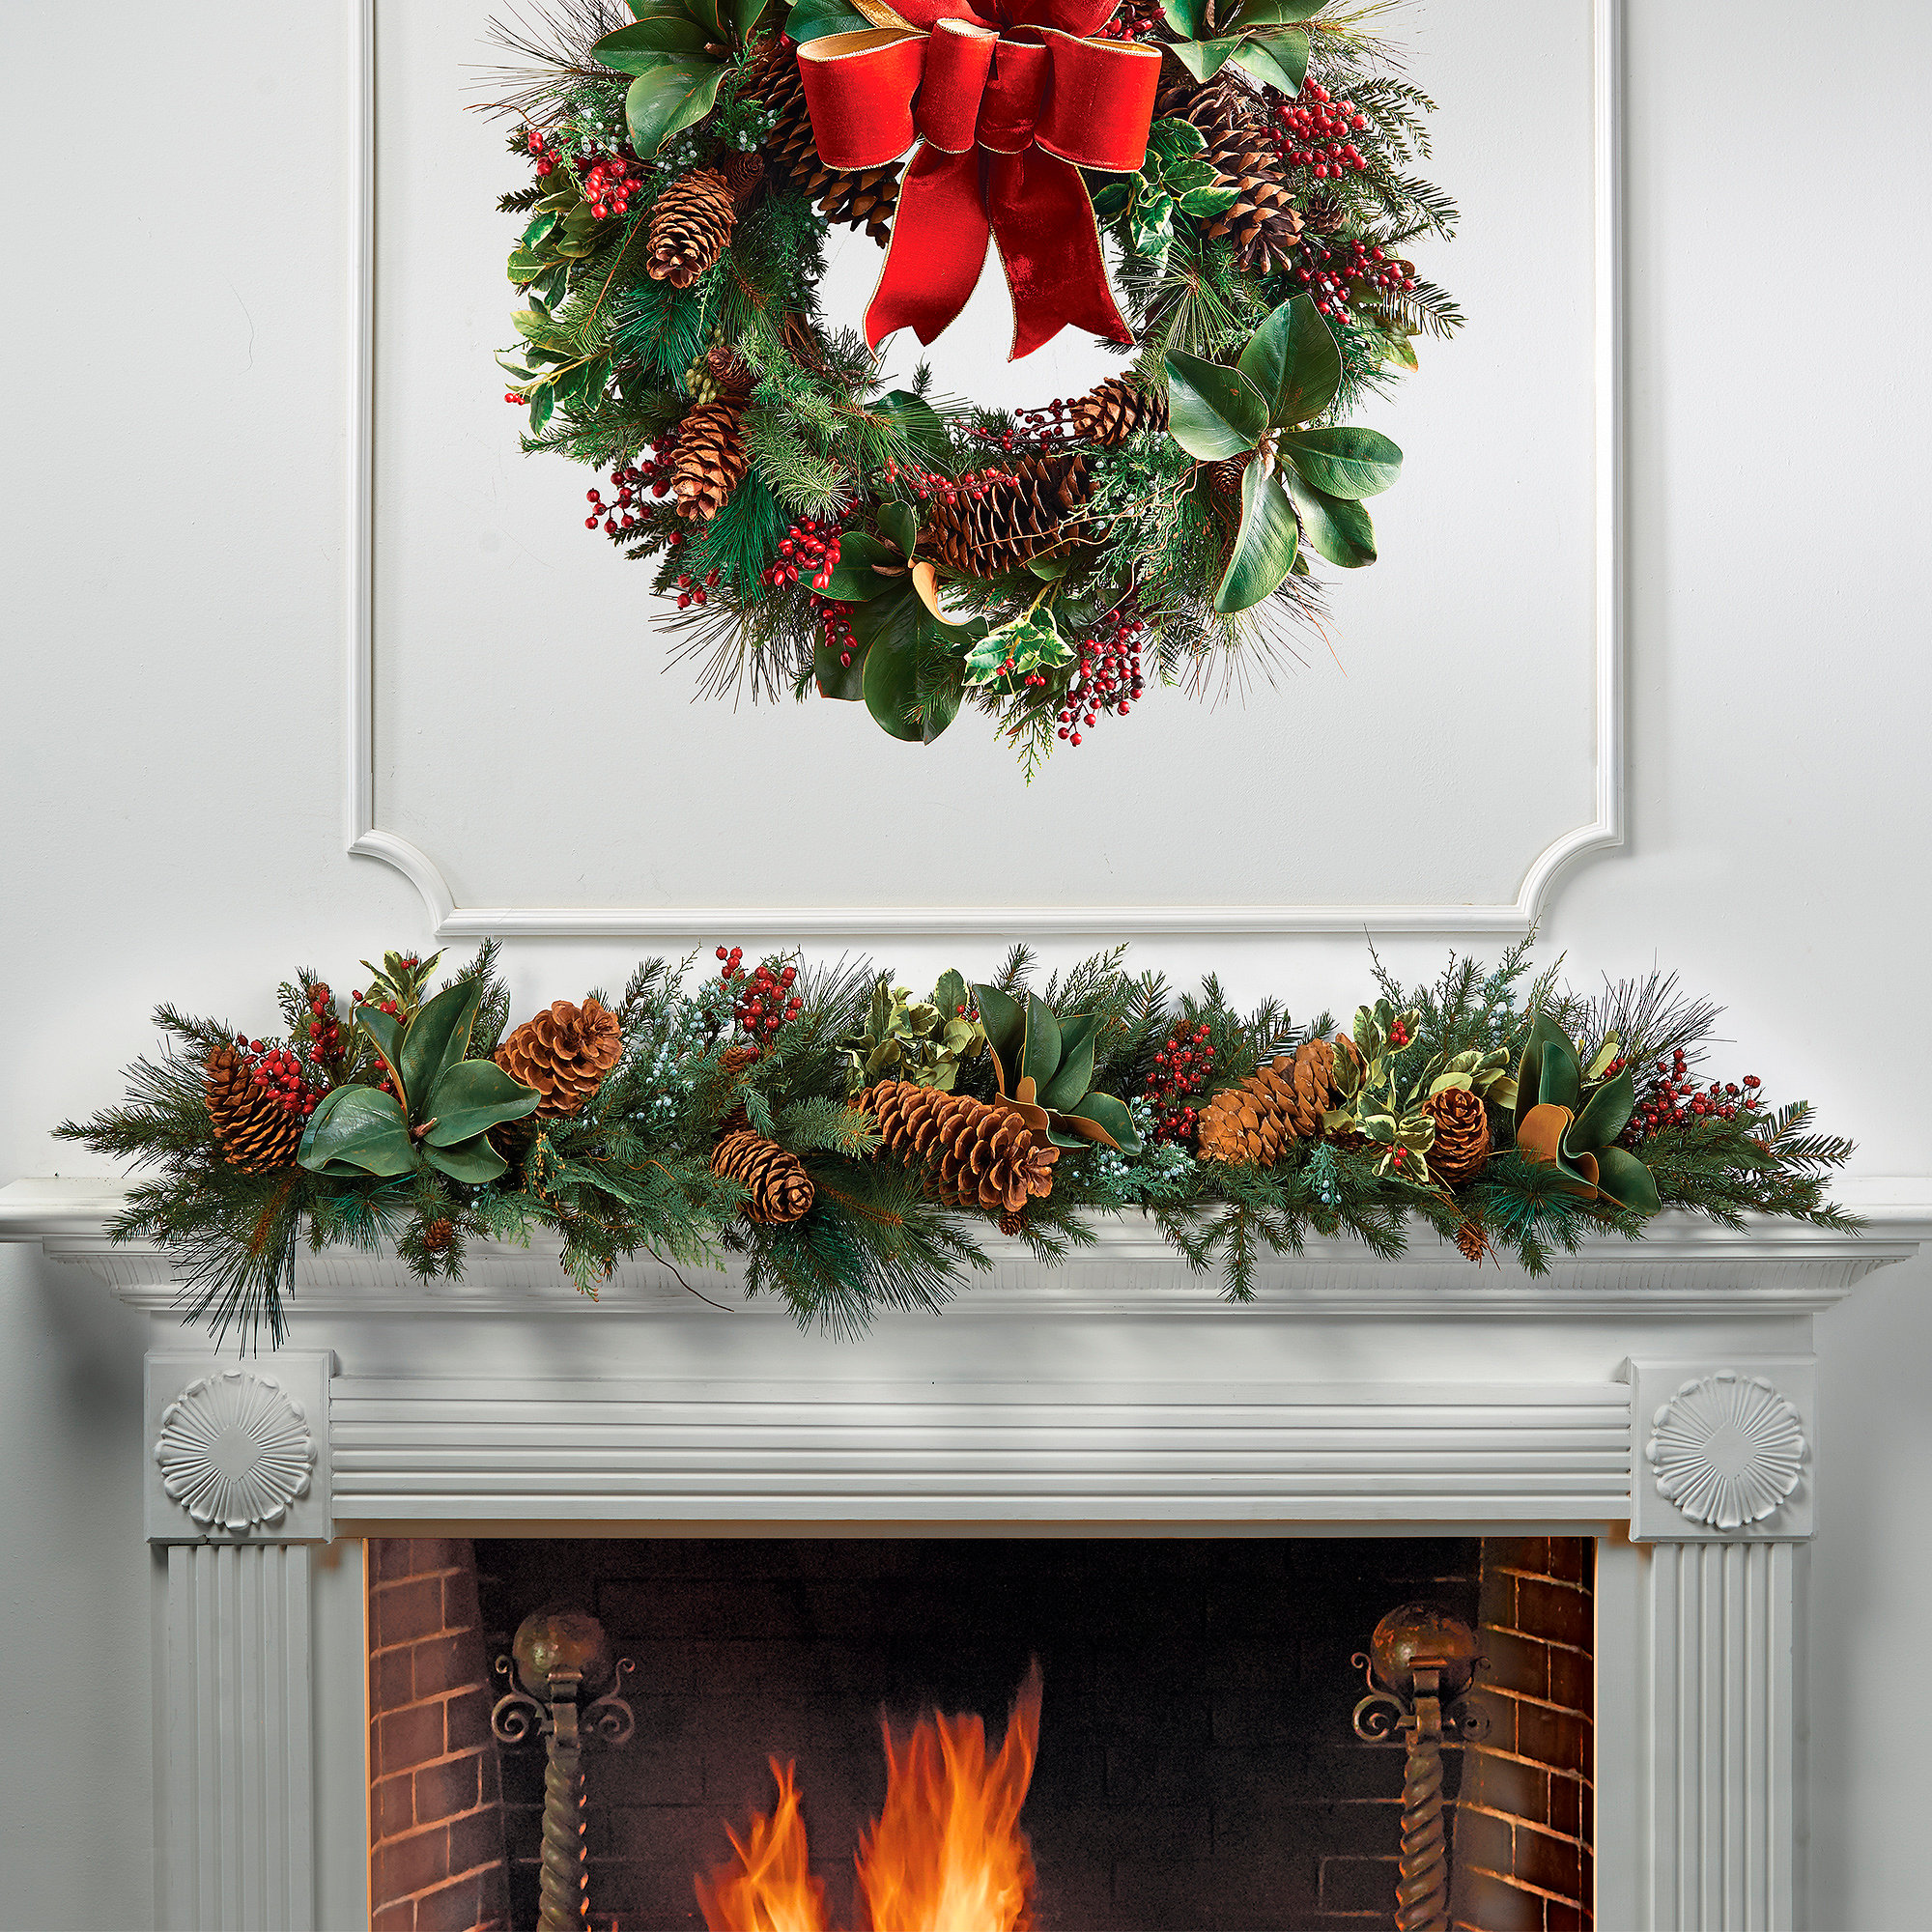 Christmas Decor Photos christmas decorations - holiday decorations | frontgate